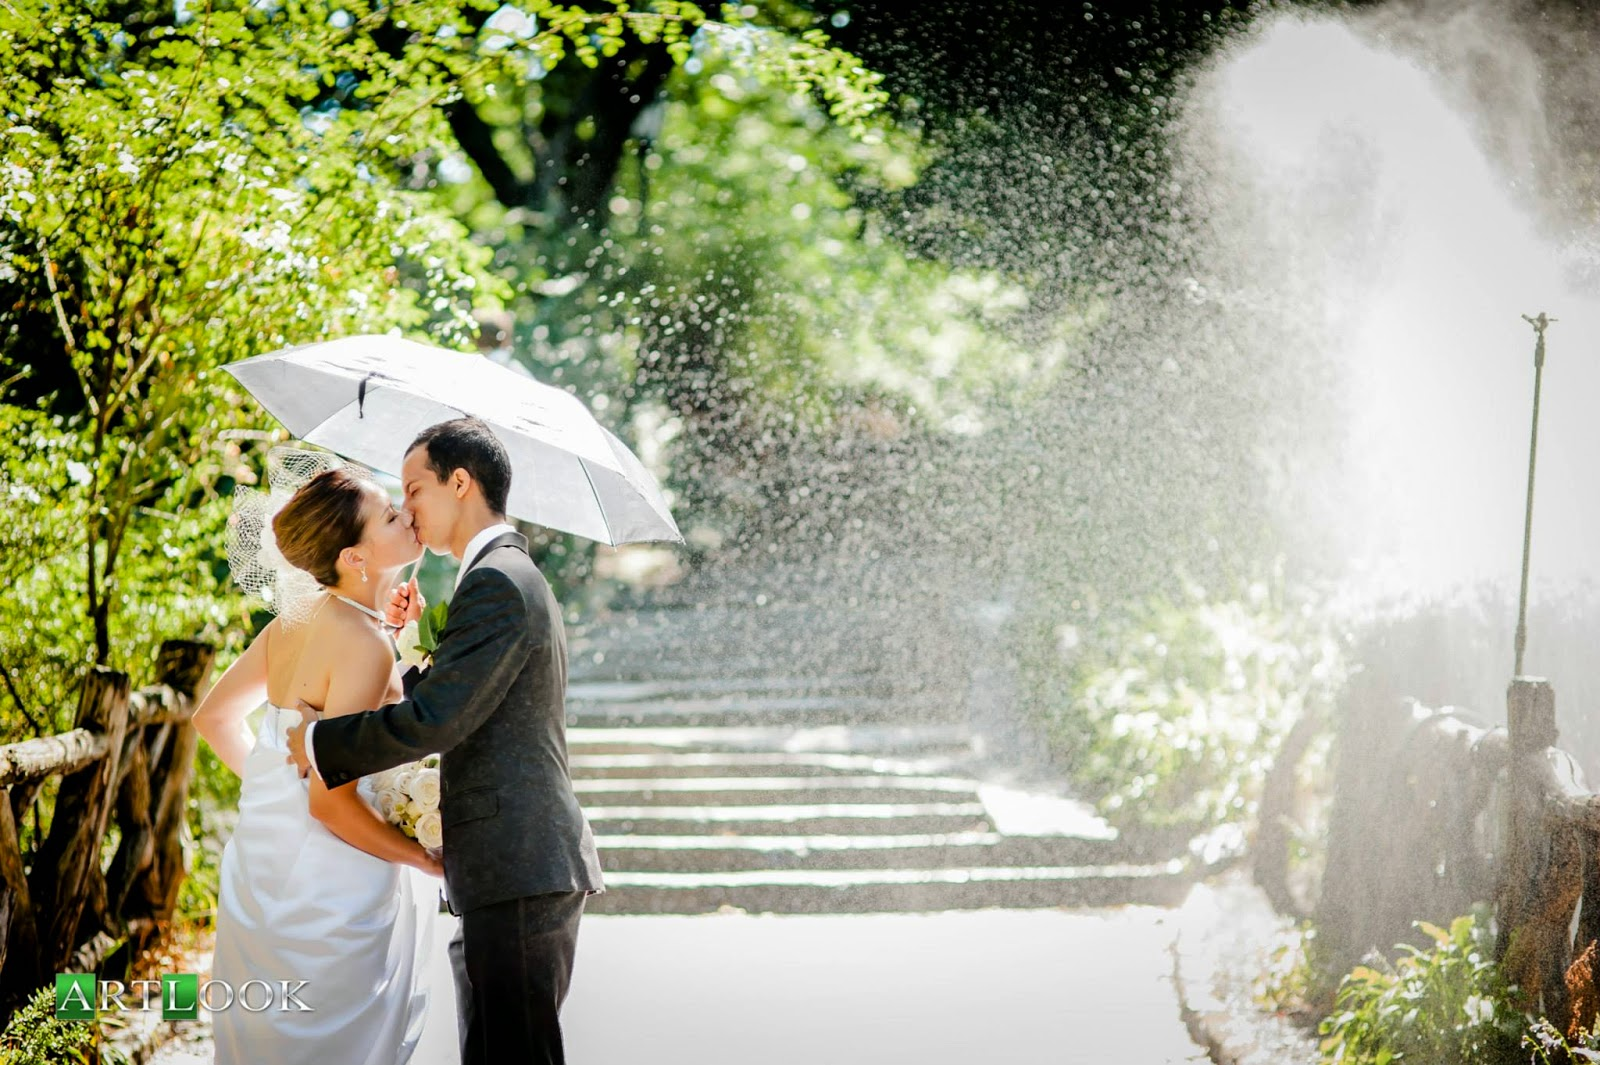 wedding photography websites new york